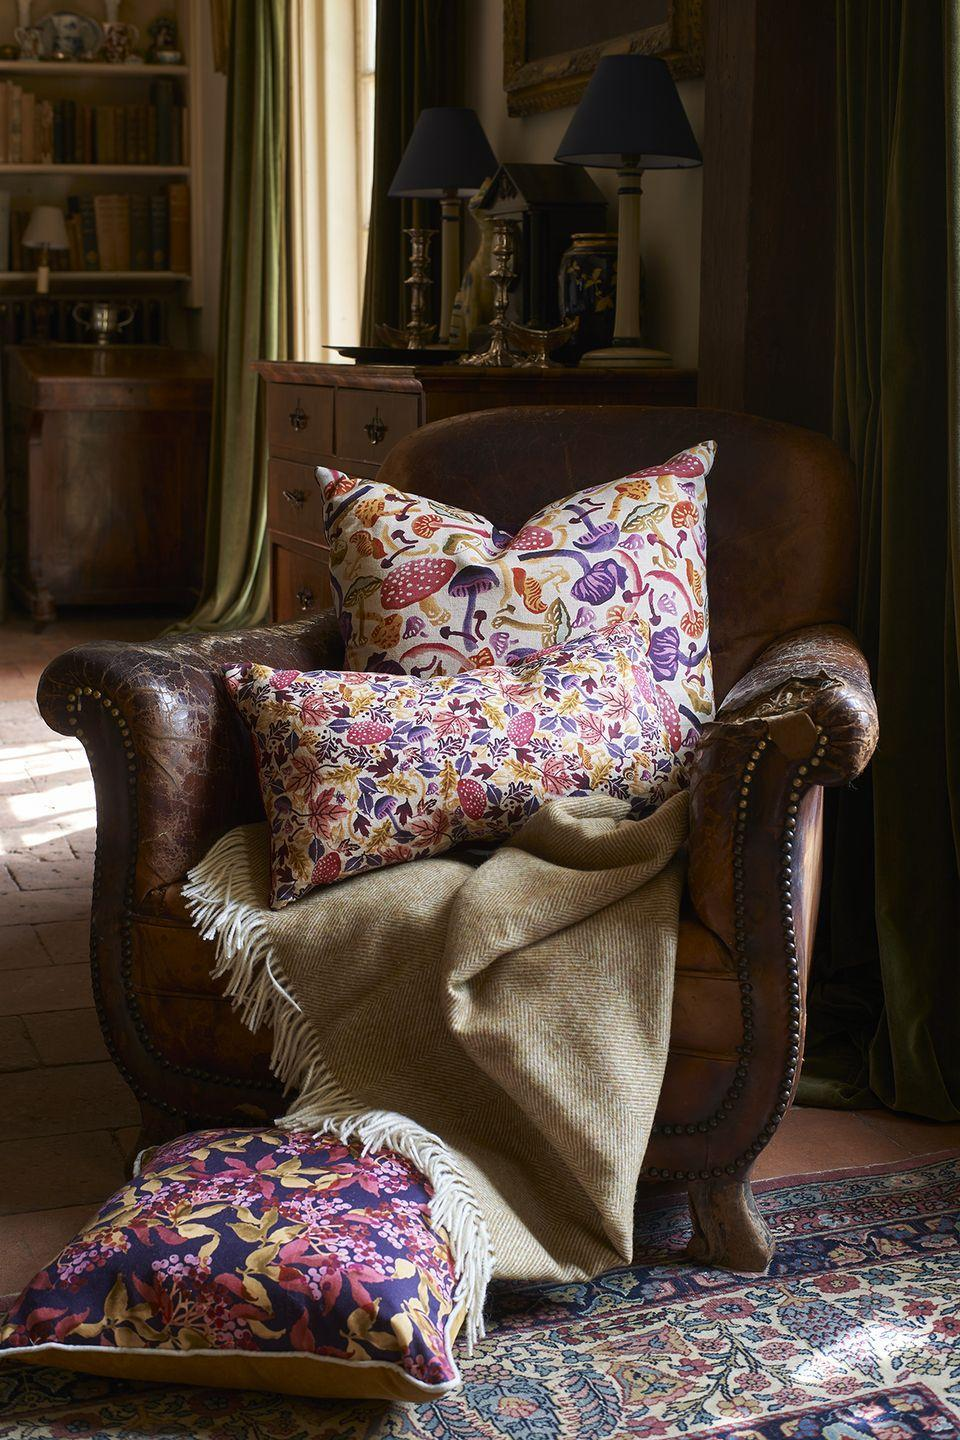 """<p>Spruce up your sofa with Emma Bridgewater's brand new collection of stylish velvet and linen cushions. Available in varying sizes, choose from an array of famous EB prints, such as the new Autumn Crocus, Oak or Butterflies range.</p><p><a class=""""link rapid-noclick-resp"""" href=""""https://go.redirectingat.com?id=127X1599956&url=https%3A%2F%2Fwww.emmabridgewater.co.uk%2Fsearch%3Fview%3Dspring%26q%3Dcushion&sref=https%3A%2F%2Fwww.housebeautiful.com%2Fuk%2Flifestyle%2Fshopping%2Fg37527696%2Femma-bridgewater-autumn-range%2F"""" rel=""""nofollow noopener"""" target=""""_blank"""" data-ylk=""""slk:SHOP CUSHIONS"""">SHOP CUSHIONS</a></p>"""